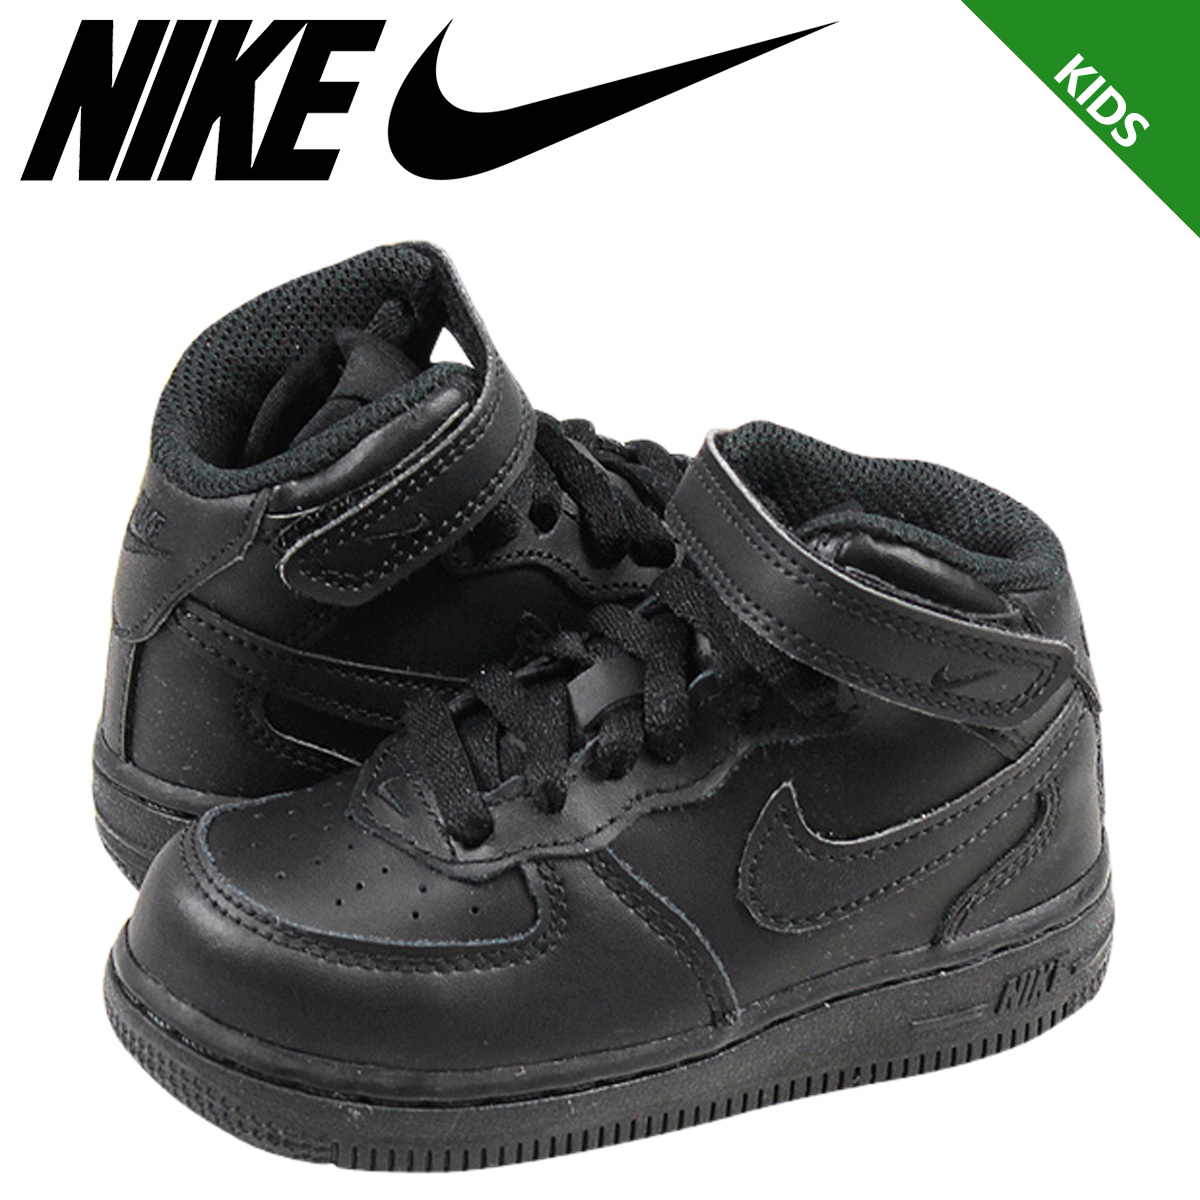 7d35b8fa353 ... denmark nike nike baby kids air force 1 mid td sneakers air force 1 mid  toddler